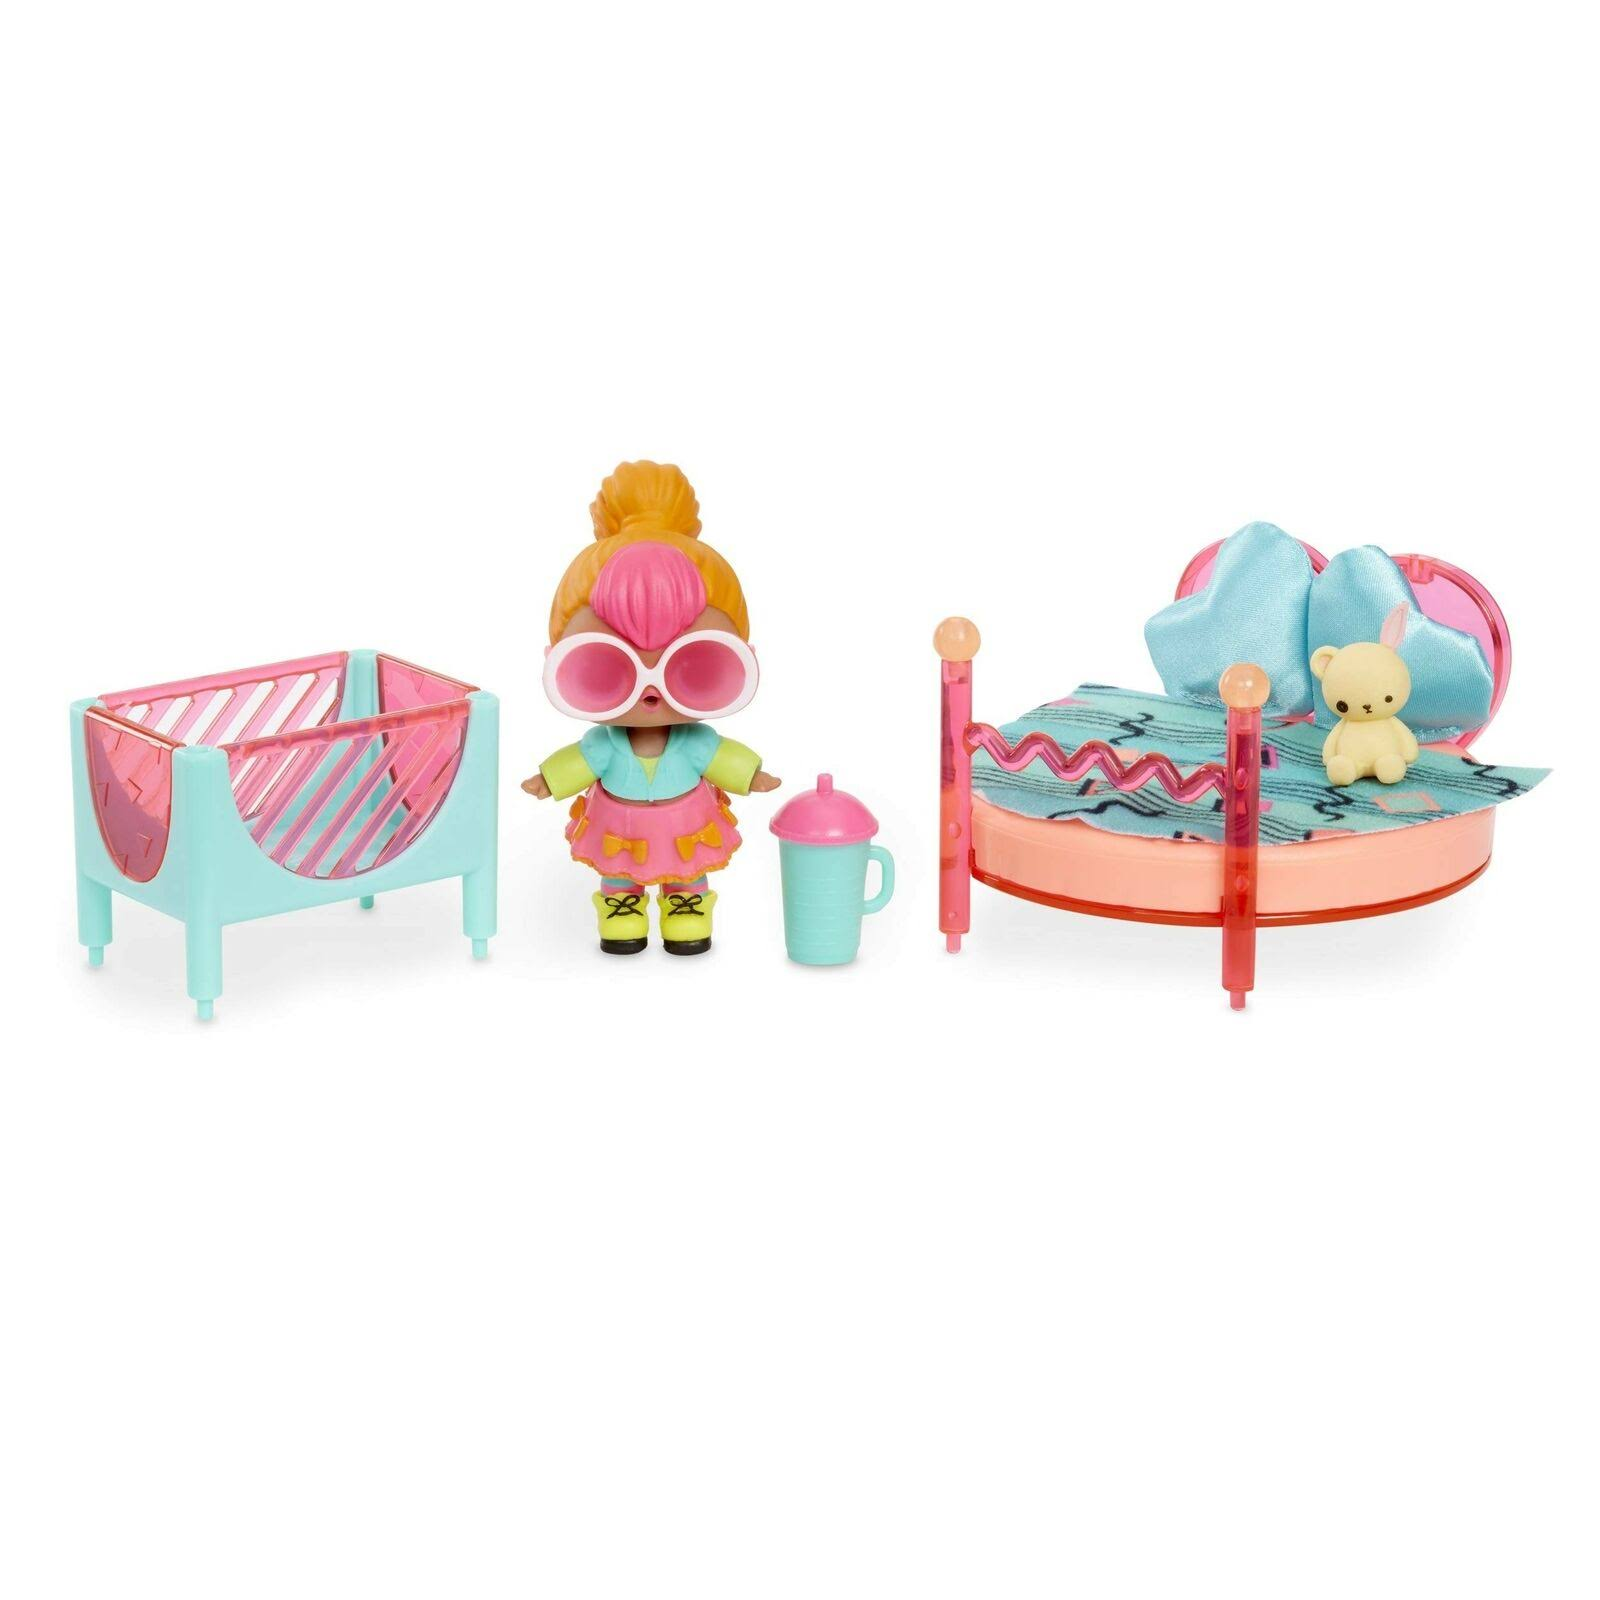 Lol Surprise House Bedroom Furniture Playset - with Neon Q.T Doll